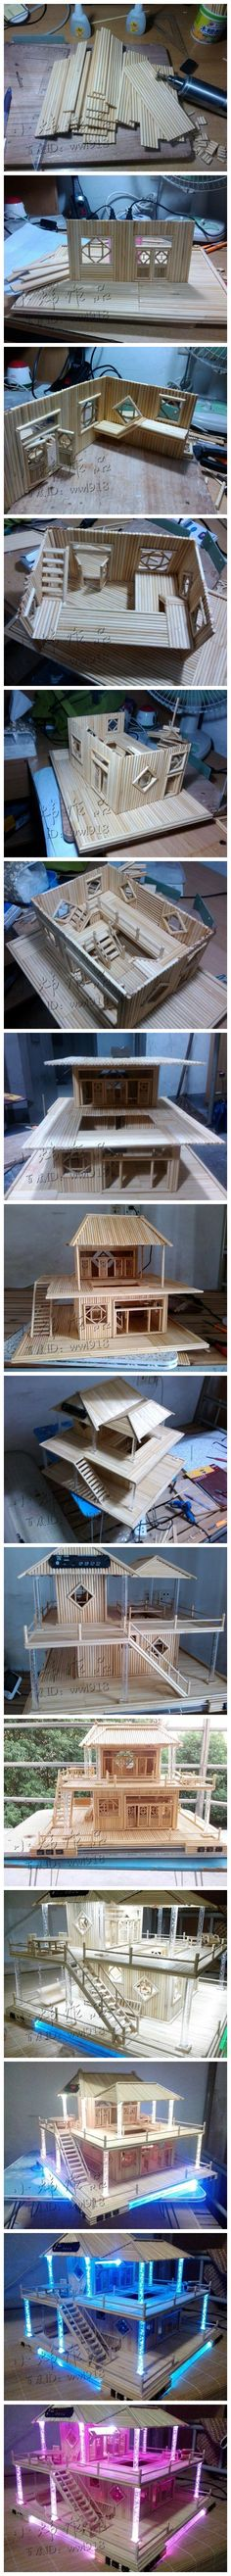 diy&craft,amazing,just use chopsticks!!! - Fairy Lights Terrace Popsicle House, Popsicle Stick Houses, Popsicle Stick Crafts, Craft Stick Crafts, Wood Crafts, Miniature Crafts, Miniature Houses, Miniature Dolls, Miniature Furniture